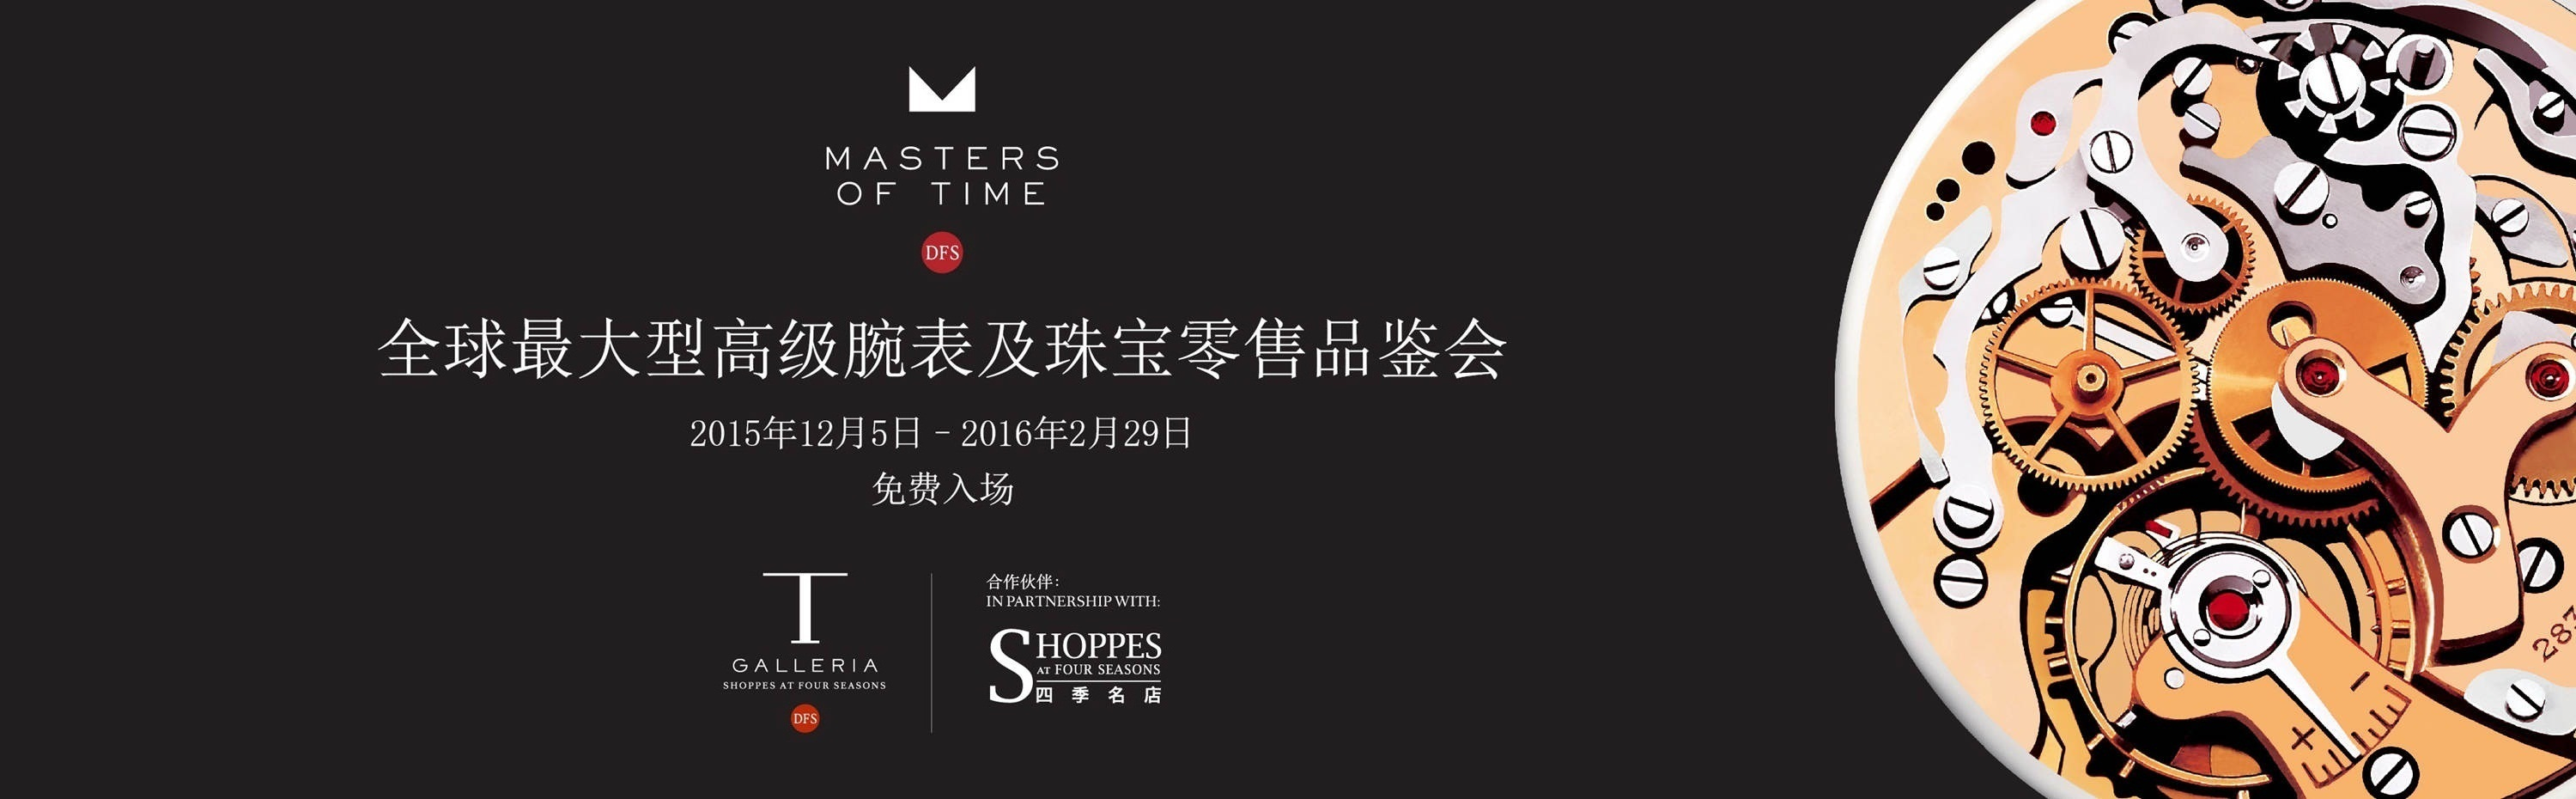 DFS MASTERS OF TIME 2015 2015年DFS【旷世藏表】品鉴会